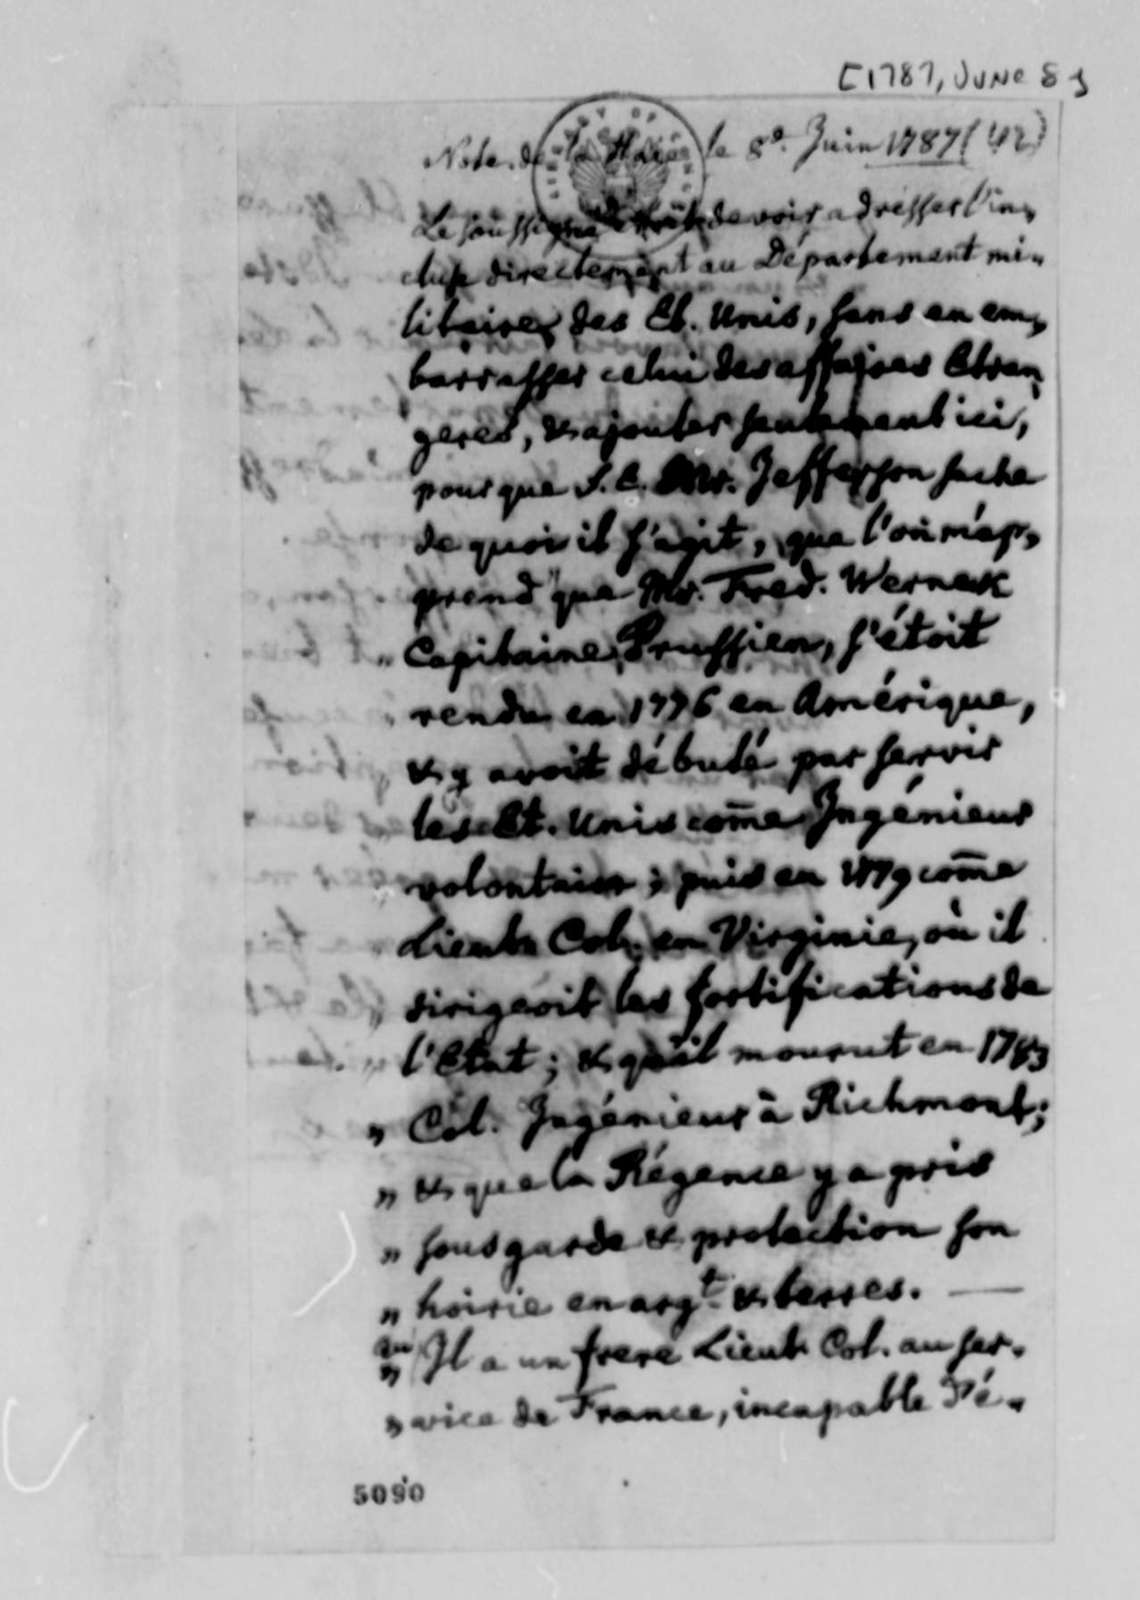 Charles William Frederic Dumas to Thomas Jefferson, June 8, 1787, in French